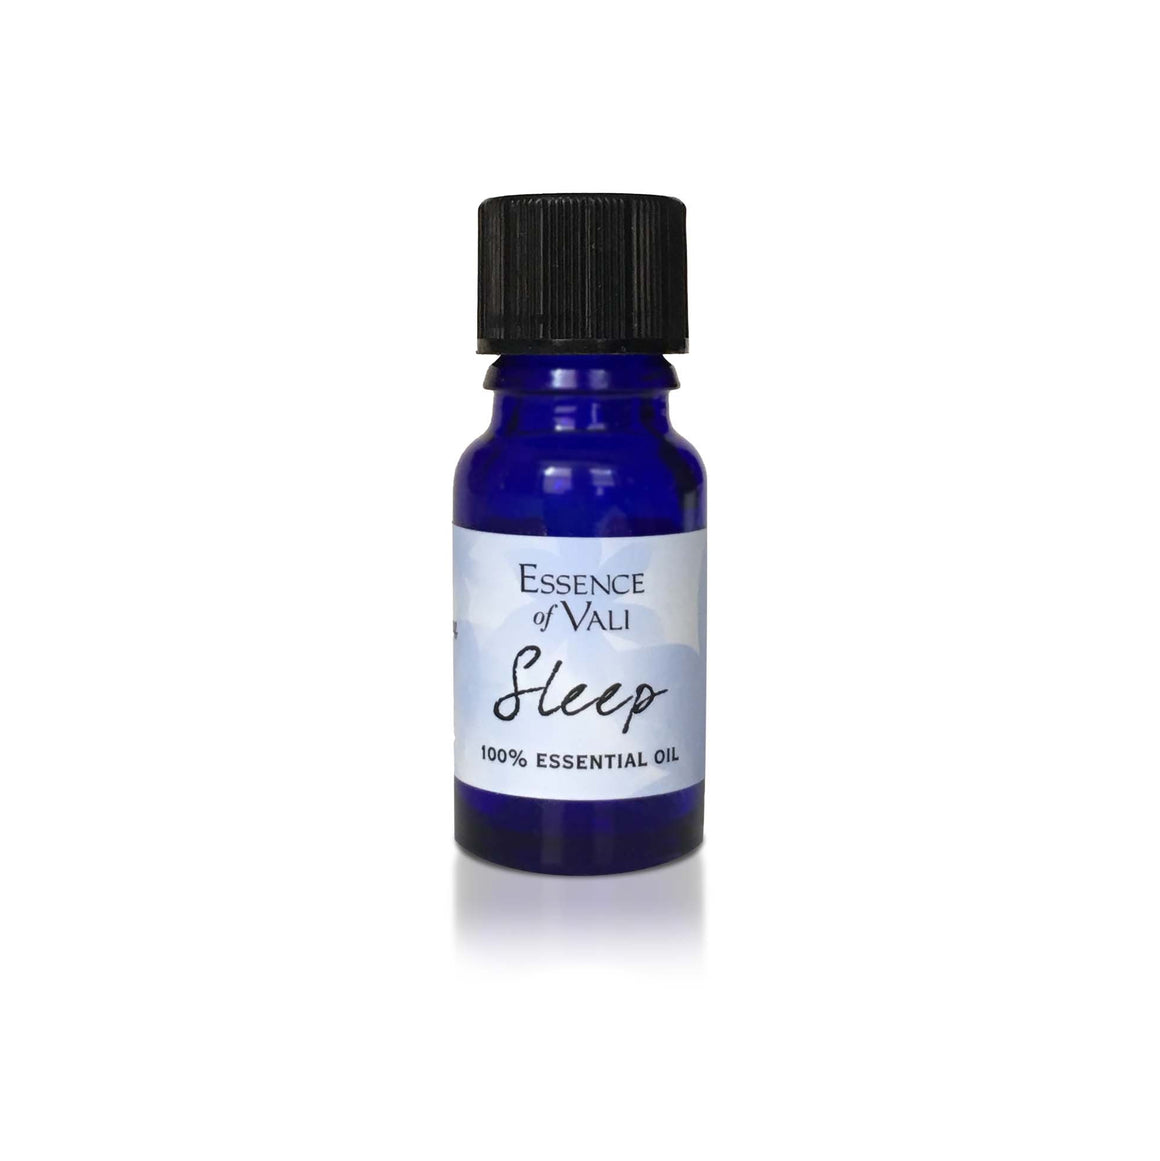 Sleep 100% Essential Oil